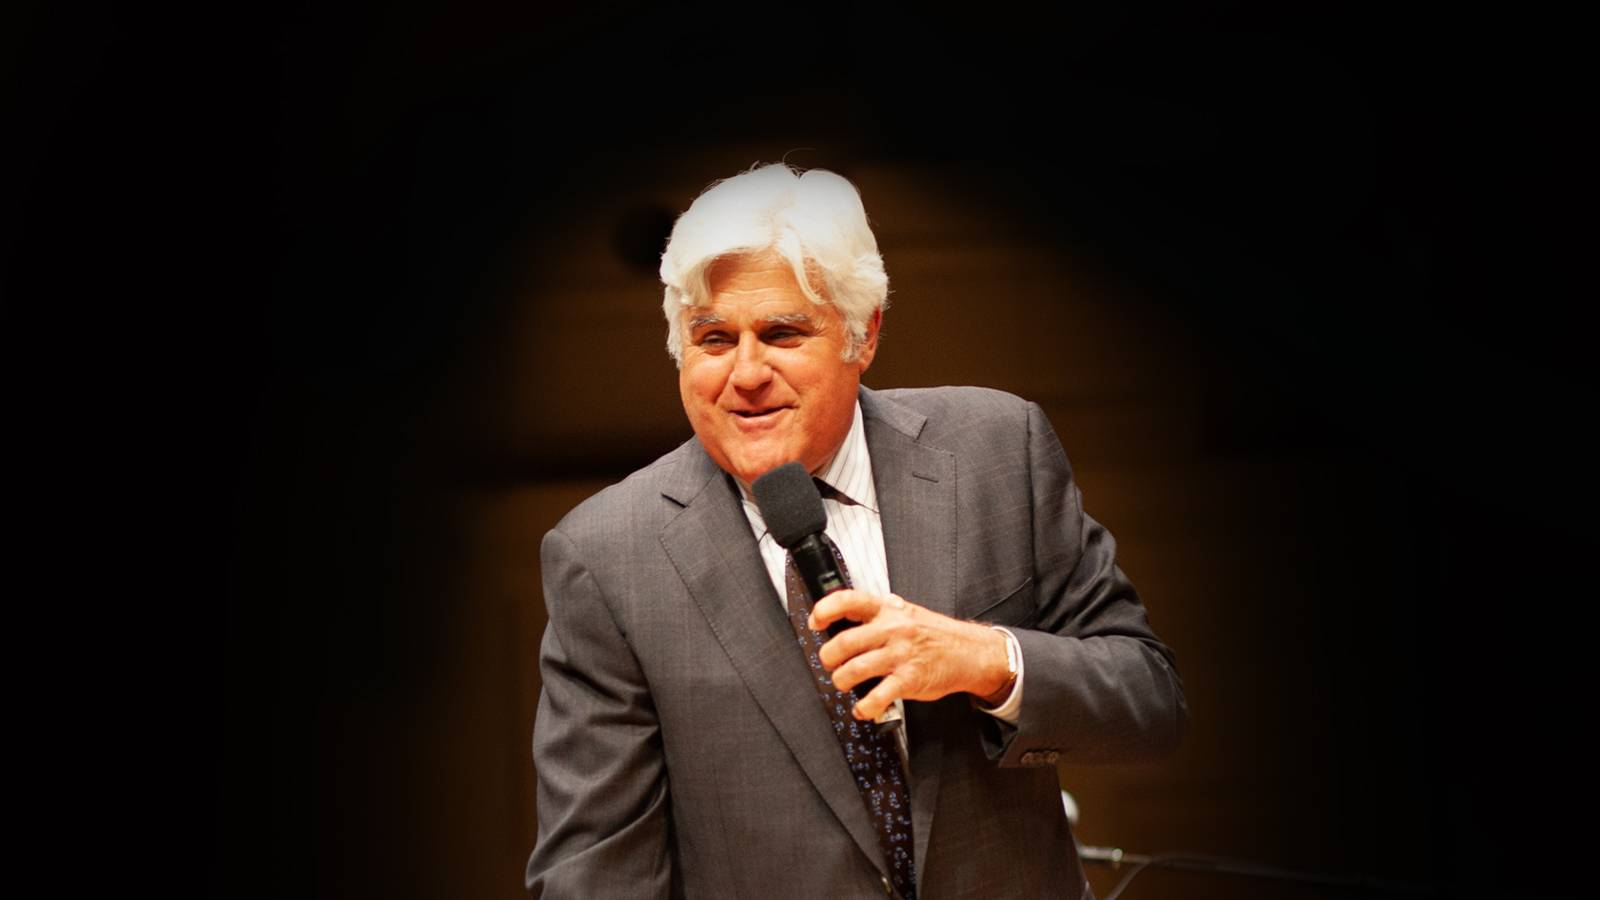 Jay Leno (Rescheduled from 3/21)